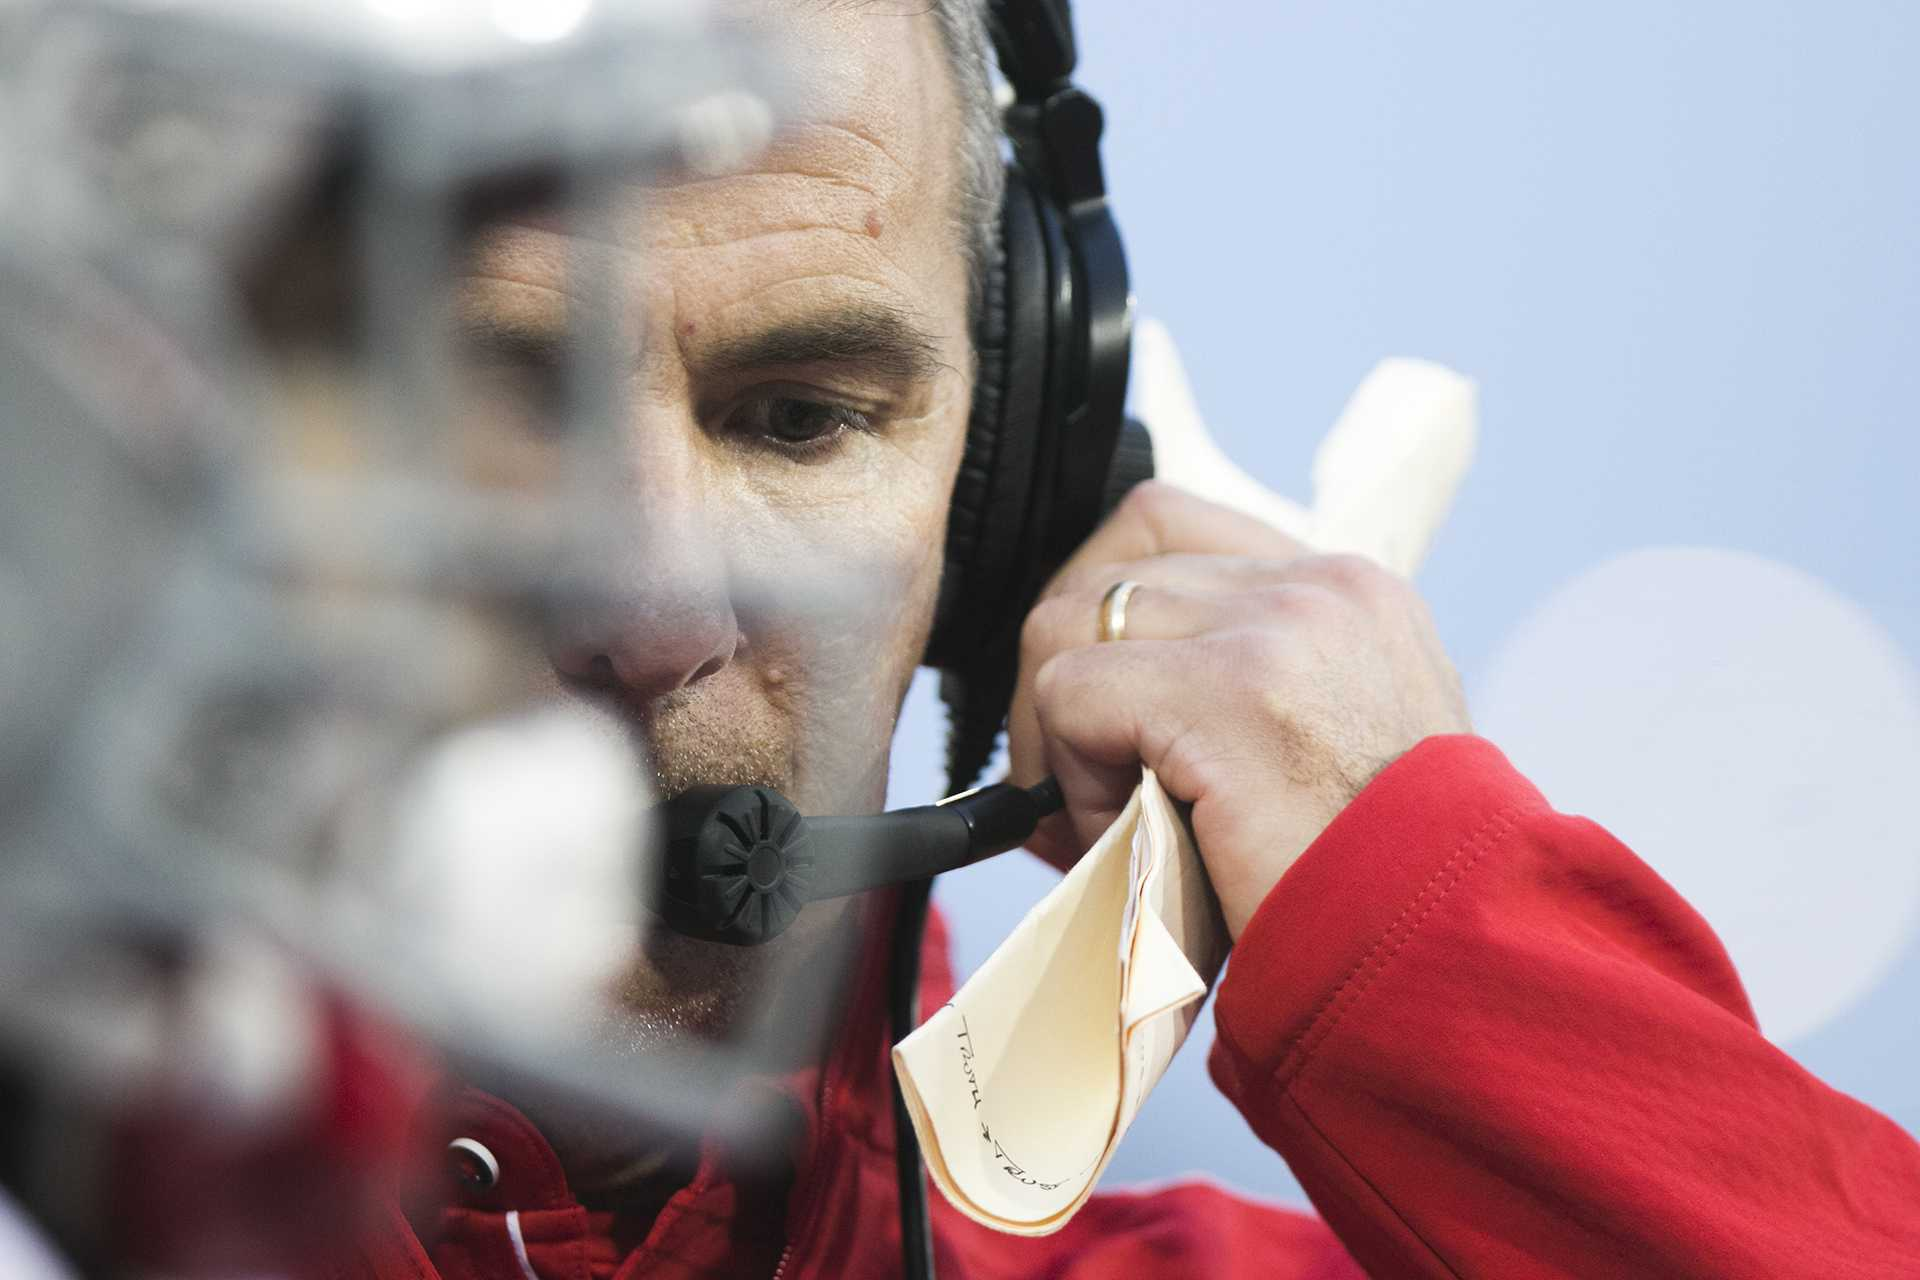 Ohio State head coach Urban Meyer talks on the sideline during the Iowa/Ohio State football game in Kinnick Stadium on Saturday, Nov. 4, 2017. The Hawkeyes defeated the Buckeyes in a storming fashion, 55-24. (Joseph Cress/The Daily Iowan)